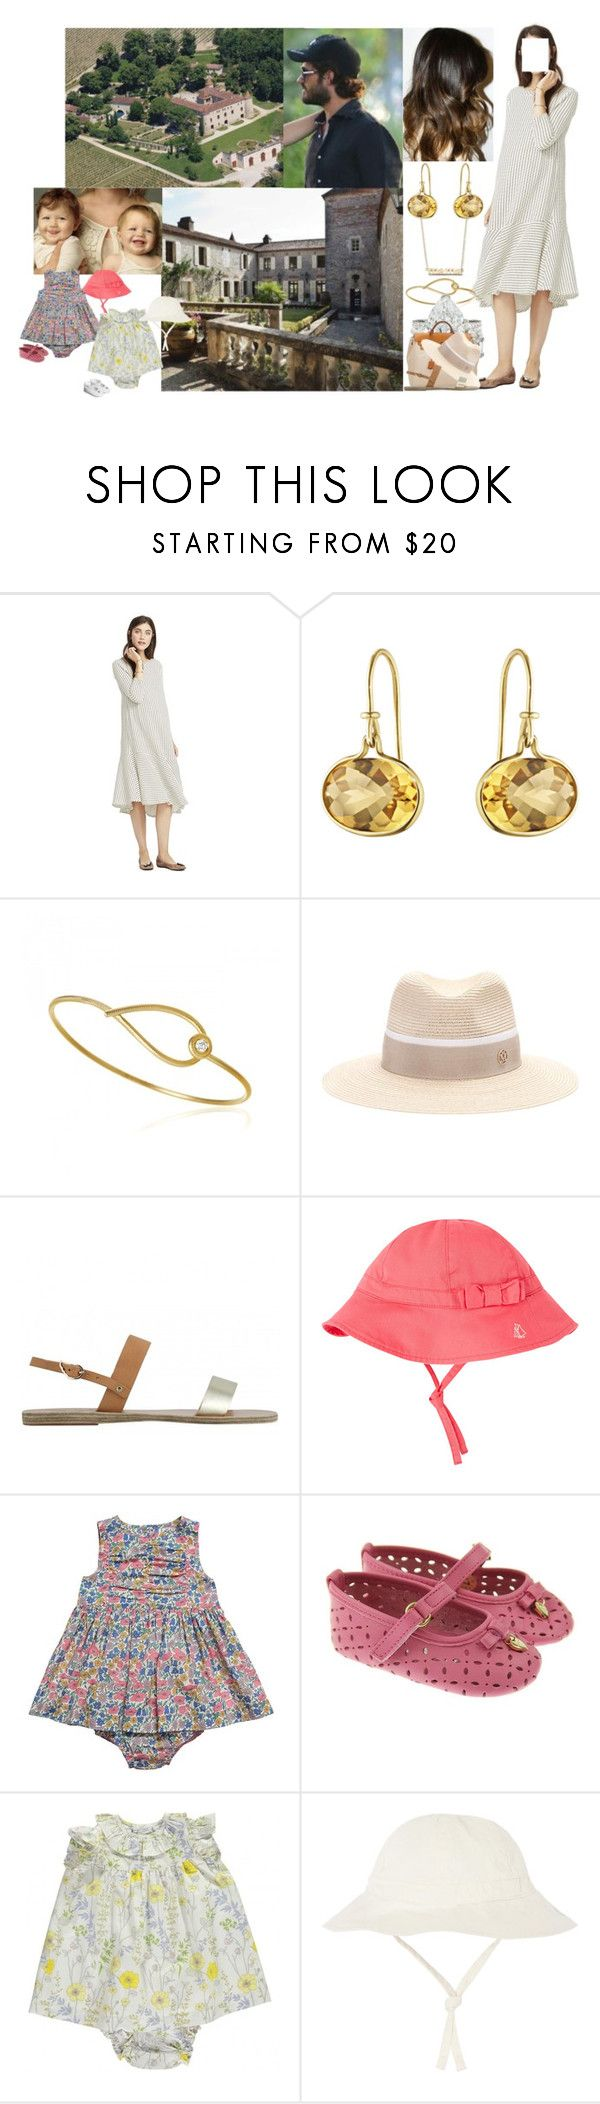 """""""Arriving at Château de Cayx in the South of France with Carl-Philip, the Girls, and her Family & Settling In"""" by louiseingrid-ofdenmark ❤ liked on Polyvore featuring Kharisma, Le Chateau, Hermès, Maison Michel, Ancient Greek Sandals, Petit Bateau, Liberty and Dolce&Gabbana"""